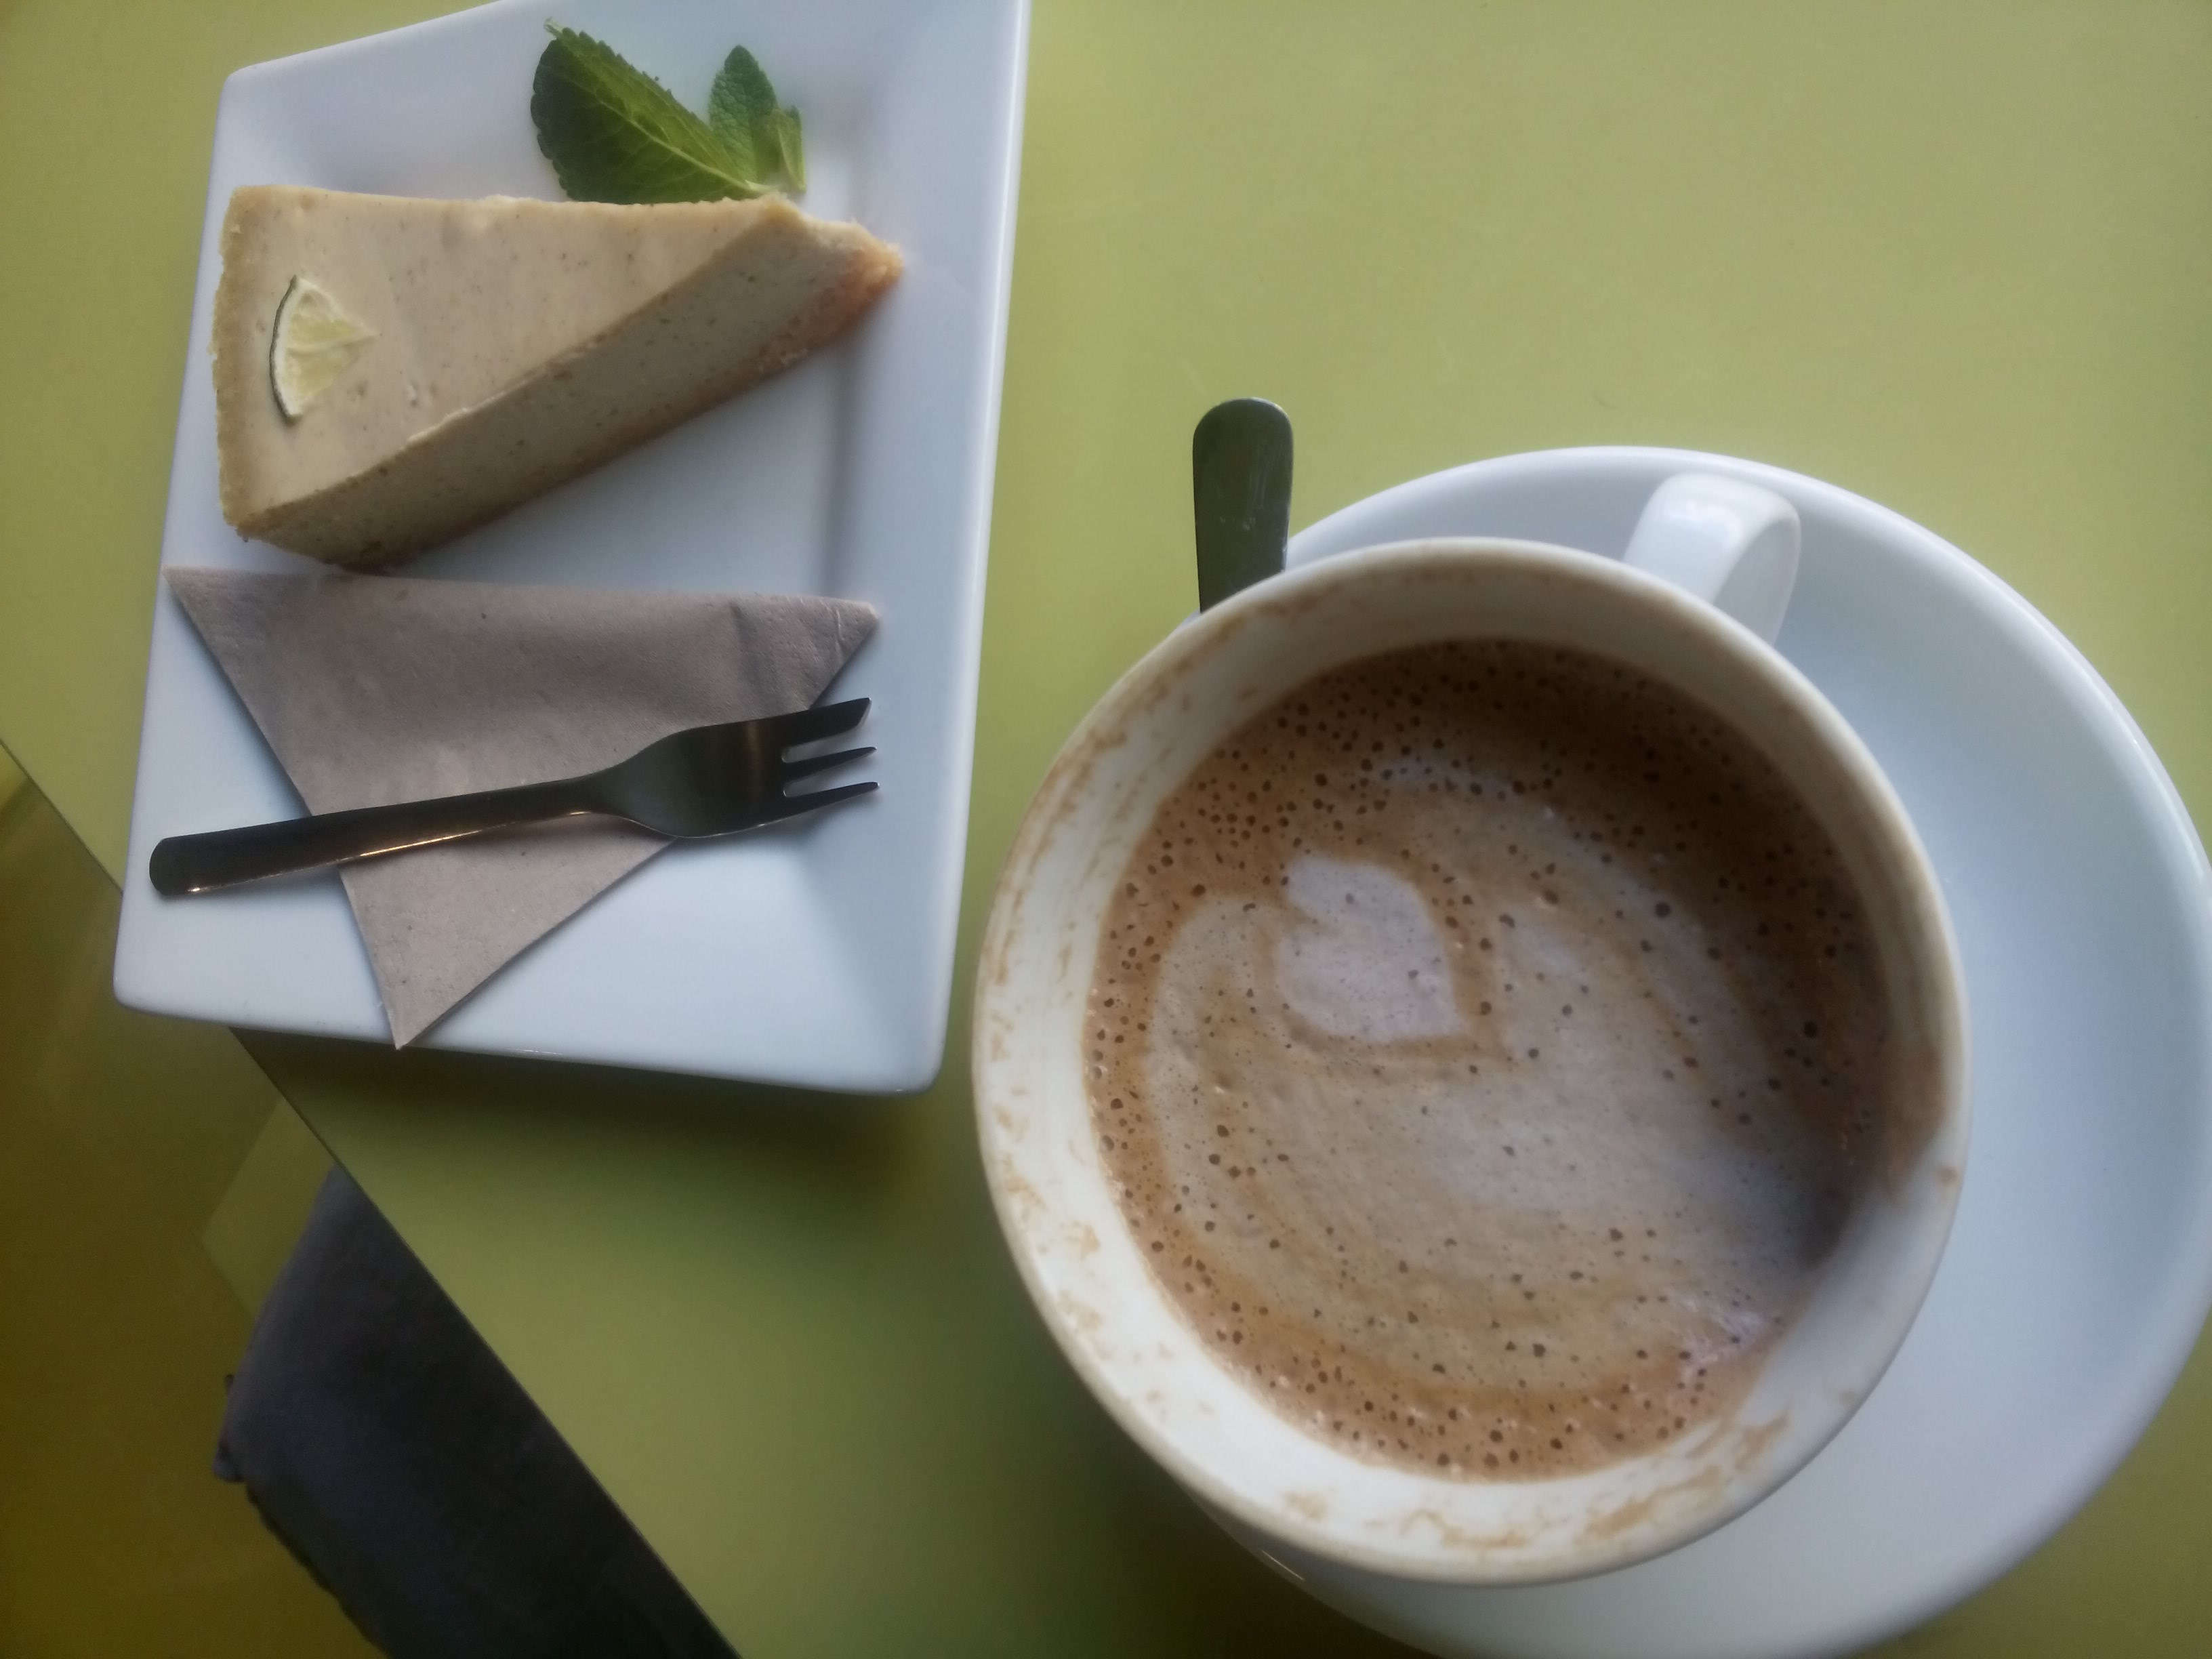 A pale green table supports a foamy cup of coffee and a slice of yellow cheesecake, from above